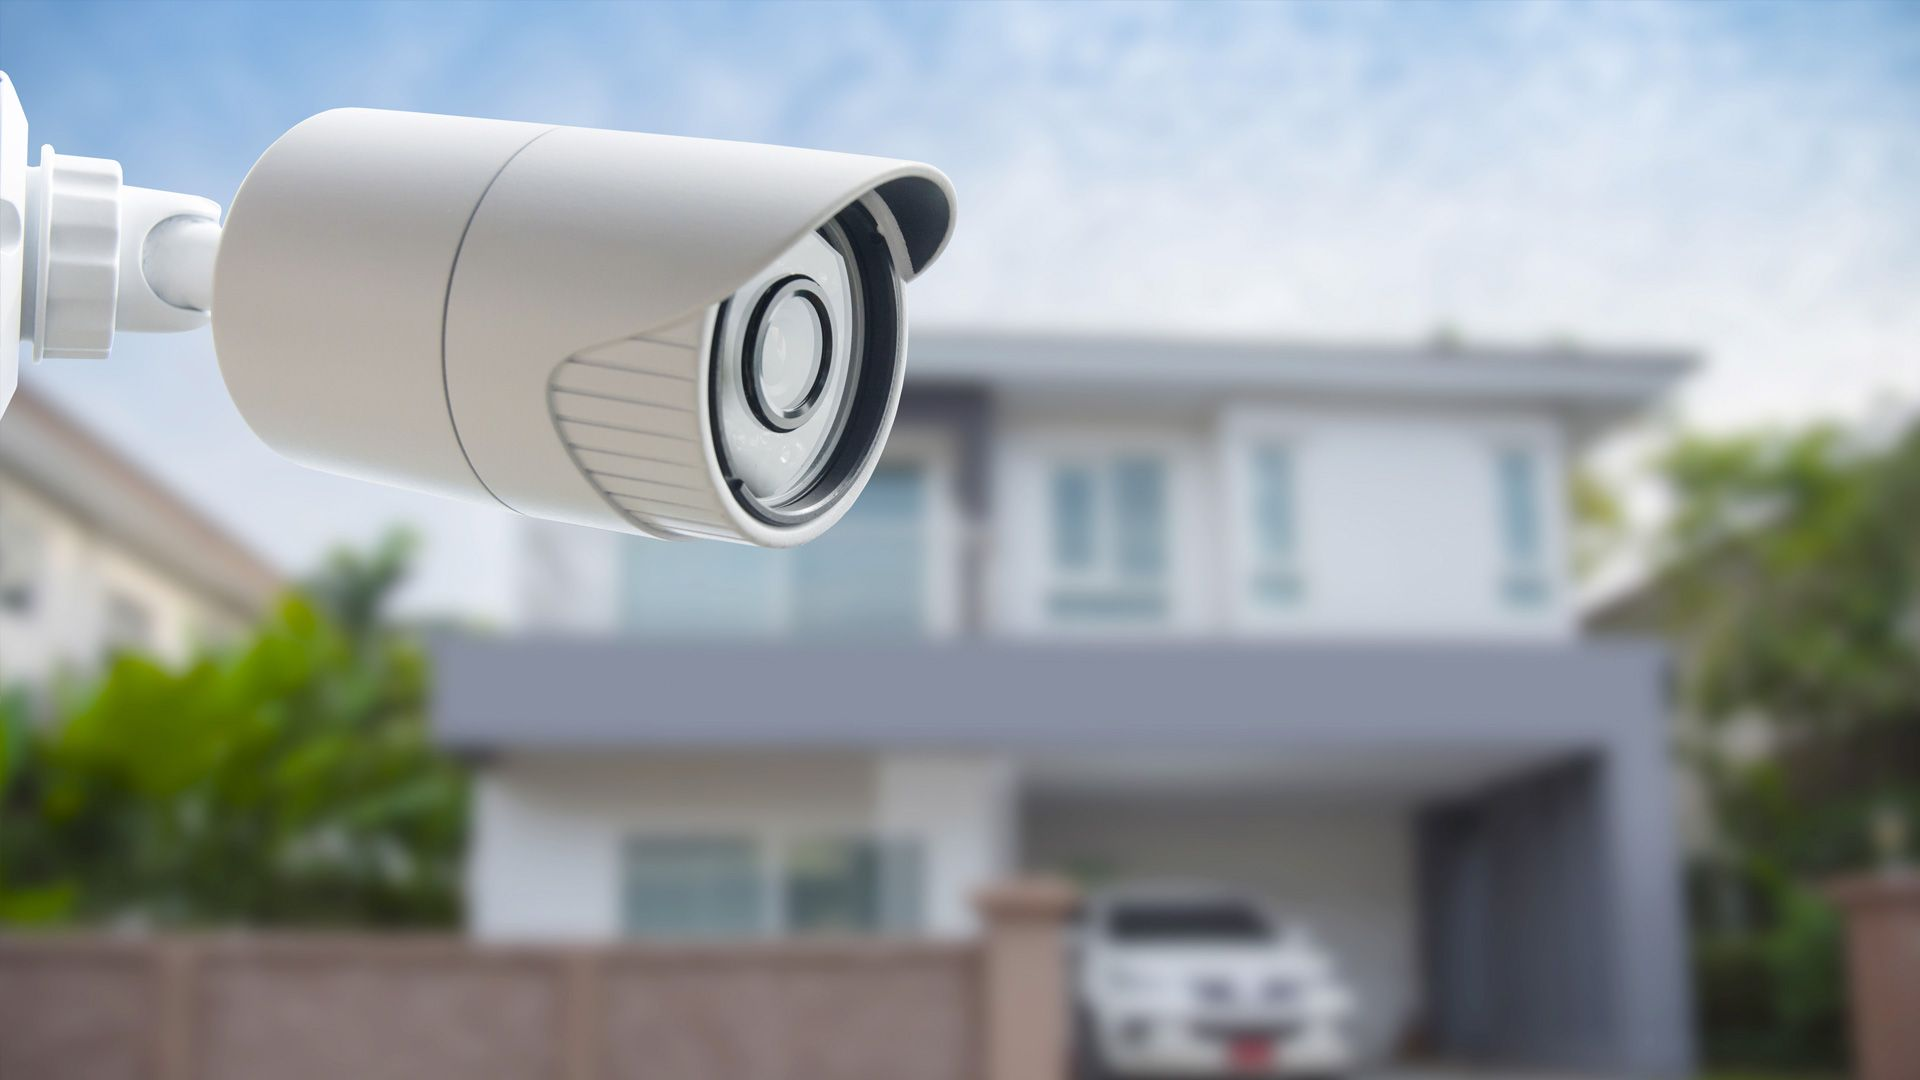 Security Systems -